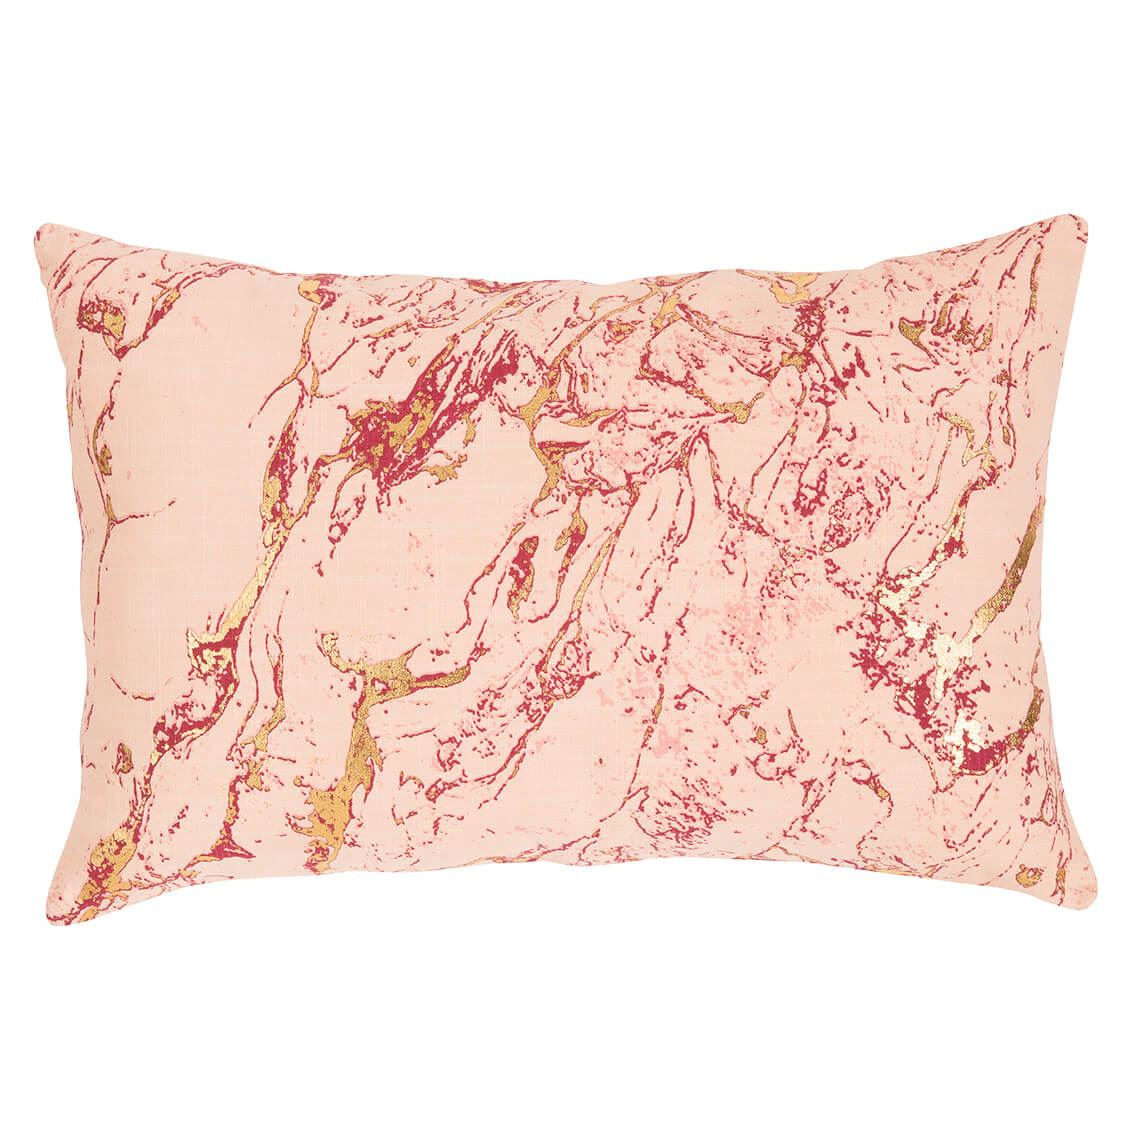 Leselle Cushion Size W 55cm x D 55cm x H 12cm in Pink/Metallic Freedom